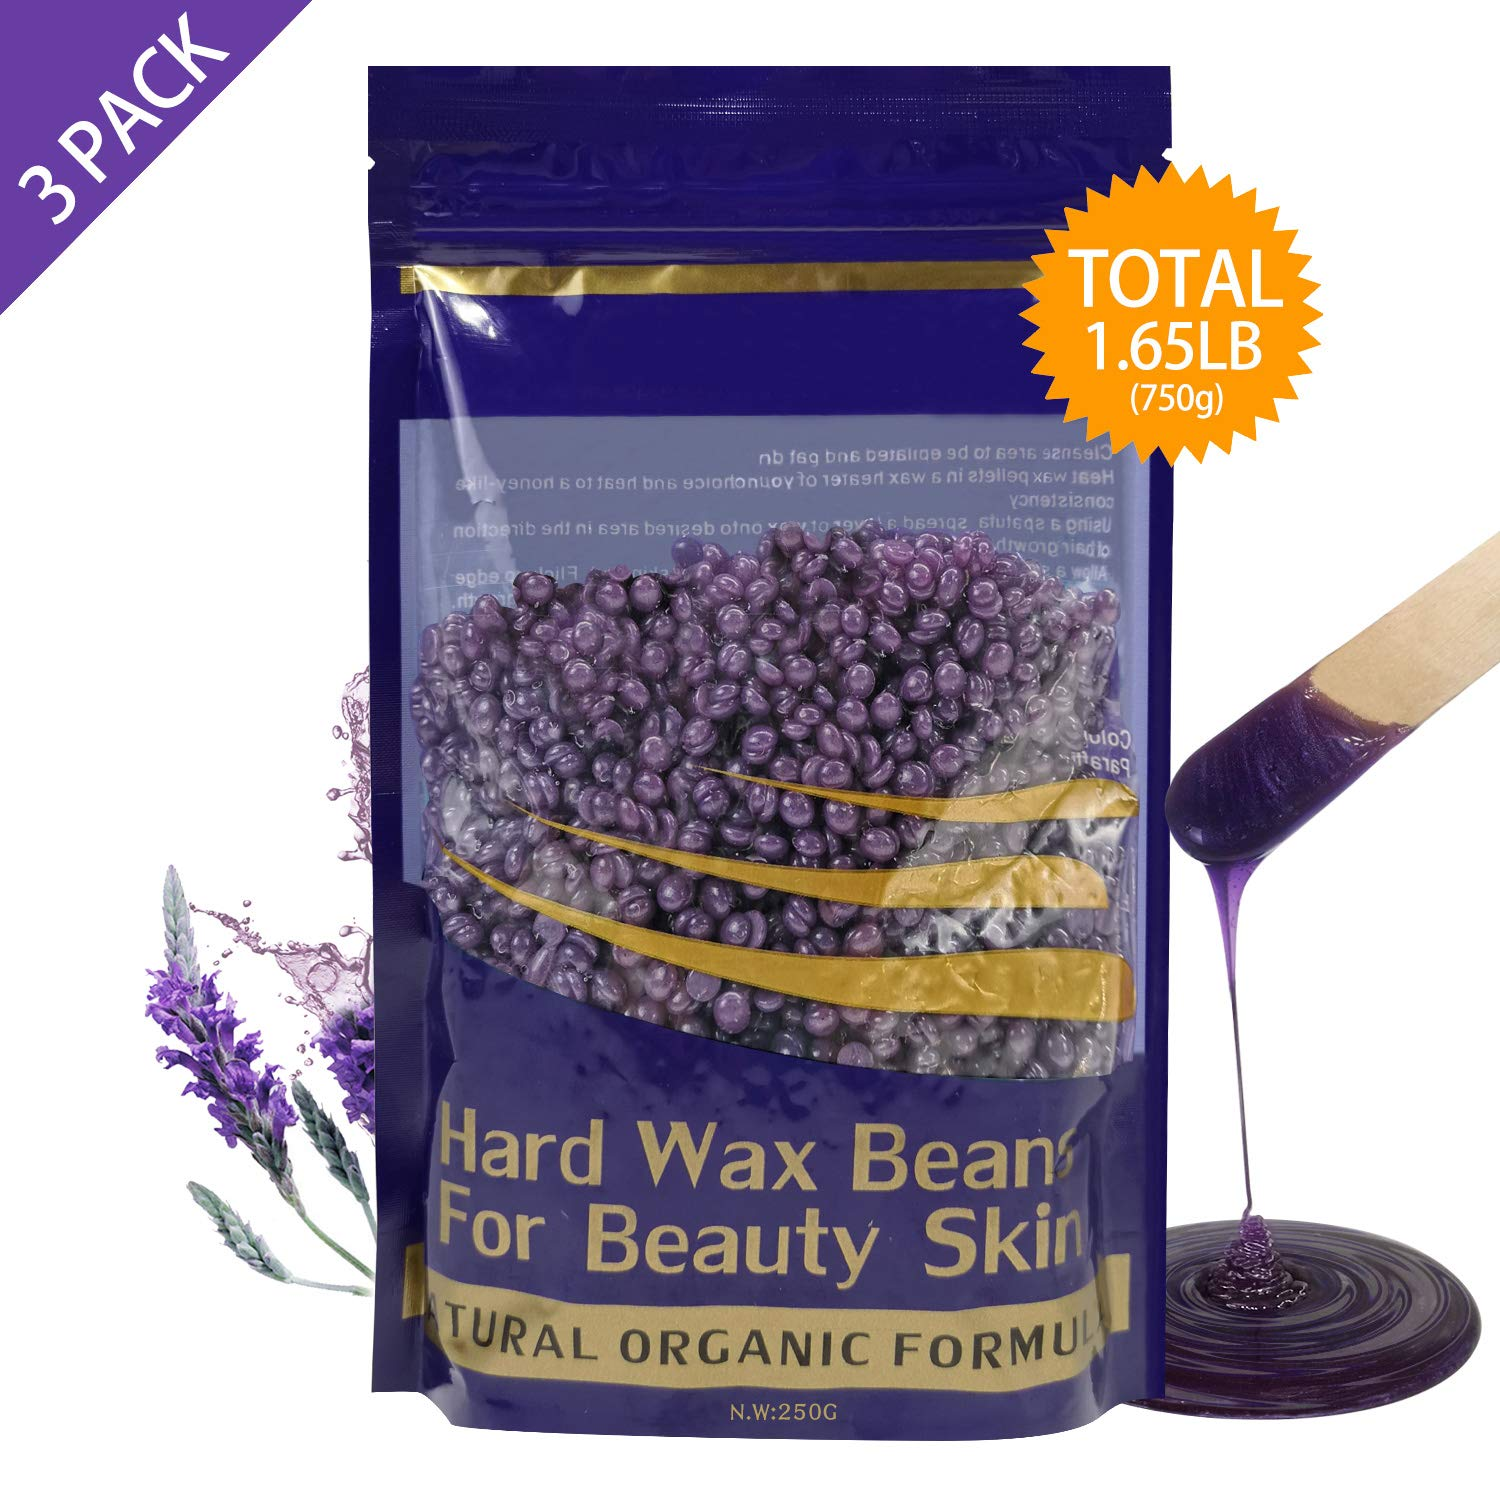 Hard Wax Beans Hair Removal for Women and Men - Stripless Painless Wax Beads Depilatory for Wax Warmer Kit, Smooth Facial and Body Armpits Bikini (250g, 3 Pack, Purple,Lavender)